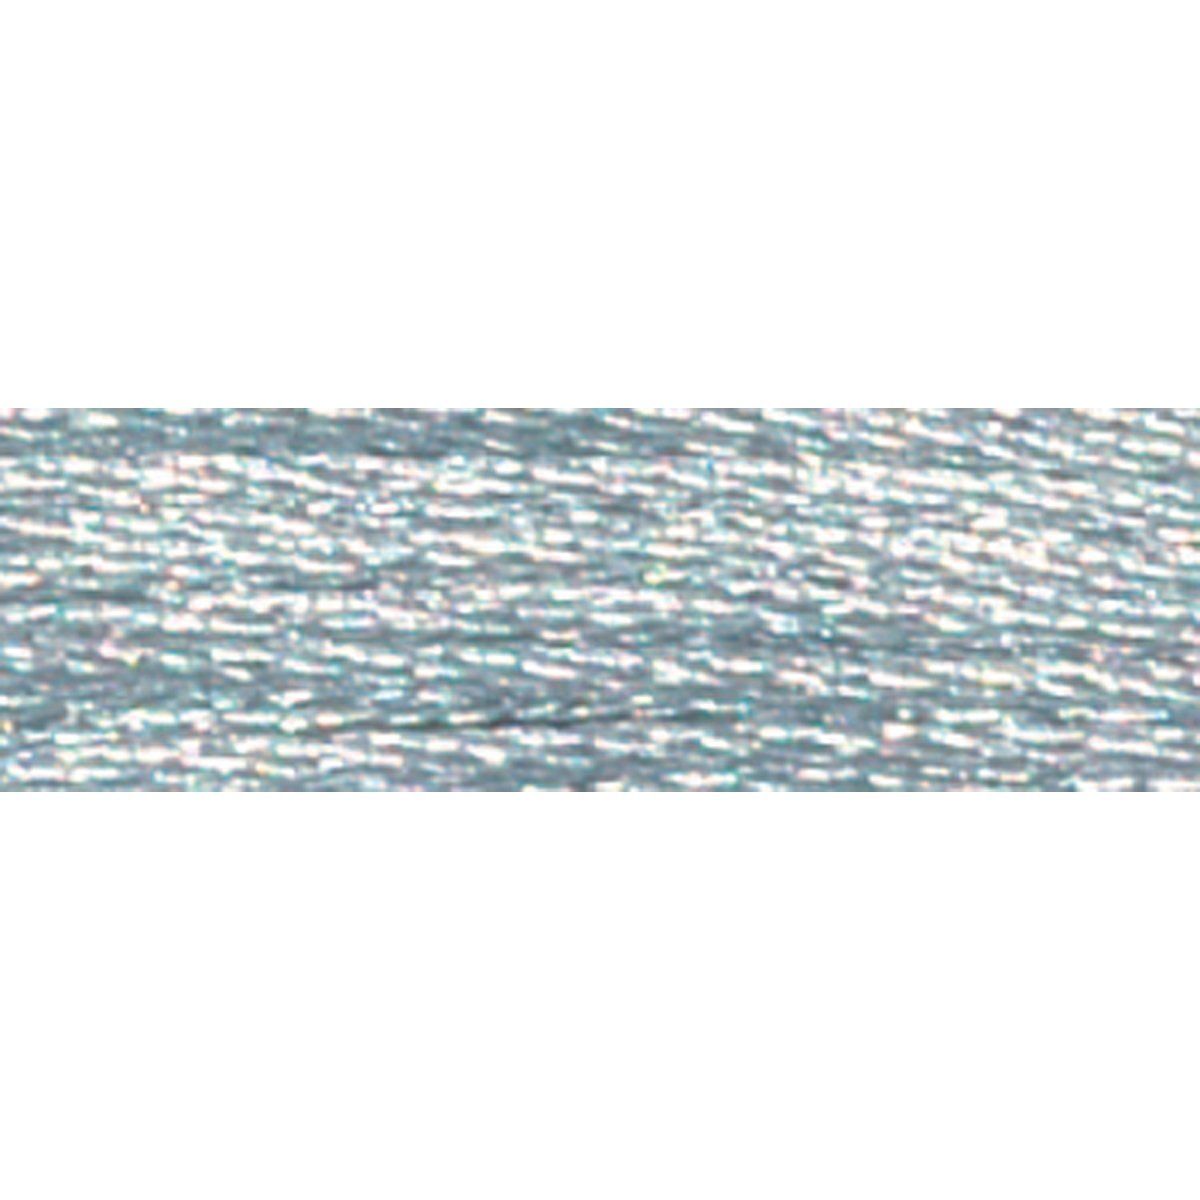 DMC 317W-E415 Light Effects Polyster Embroidery Floss, 8.7-Yard, Pewter Notions - In Network